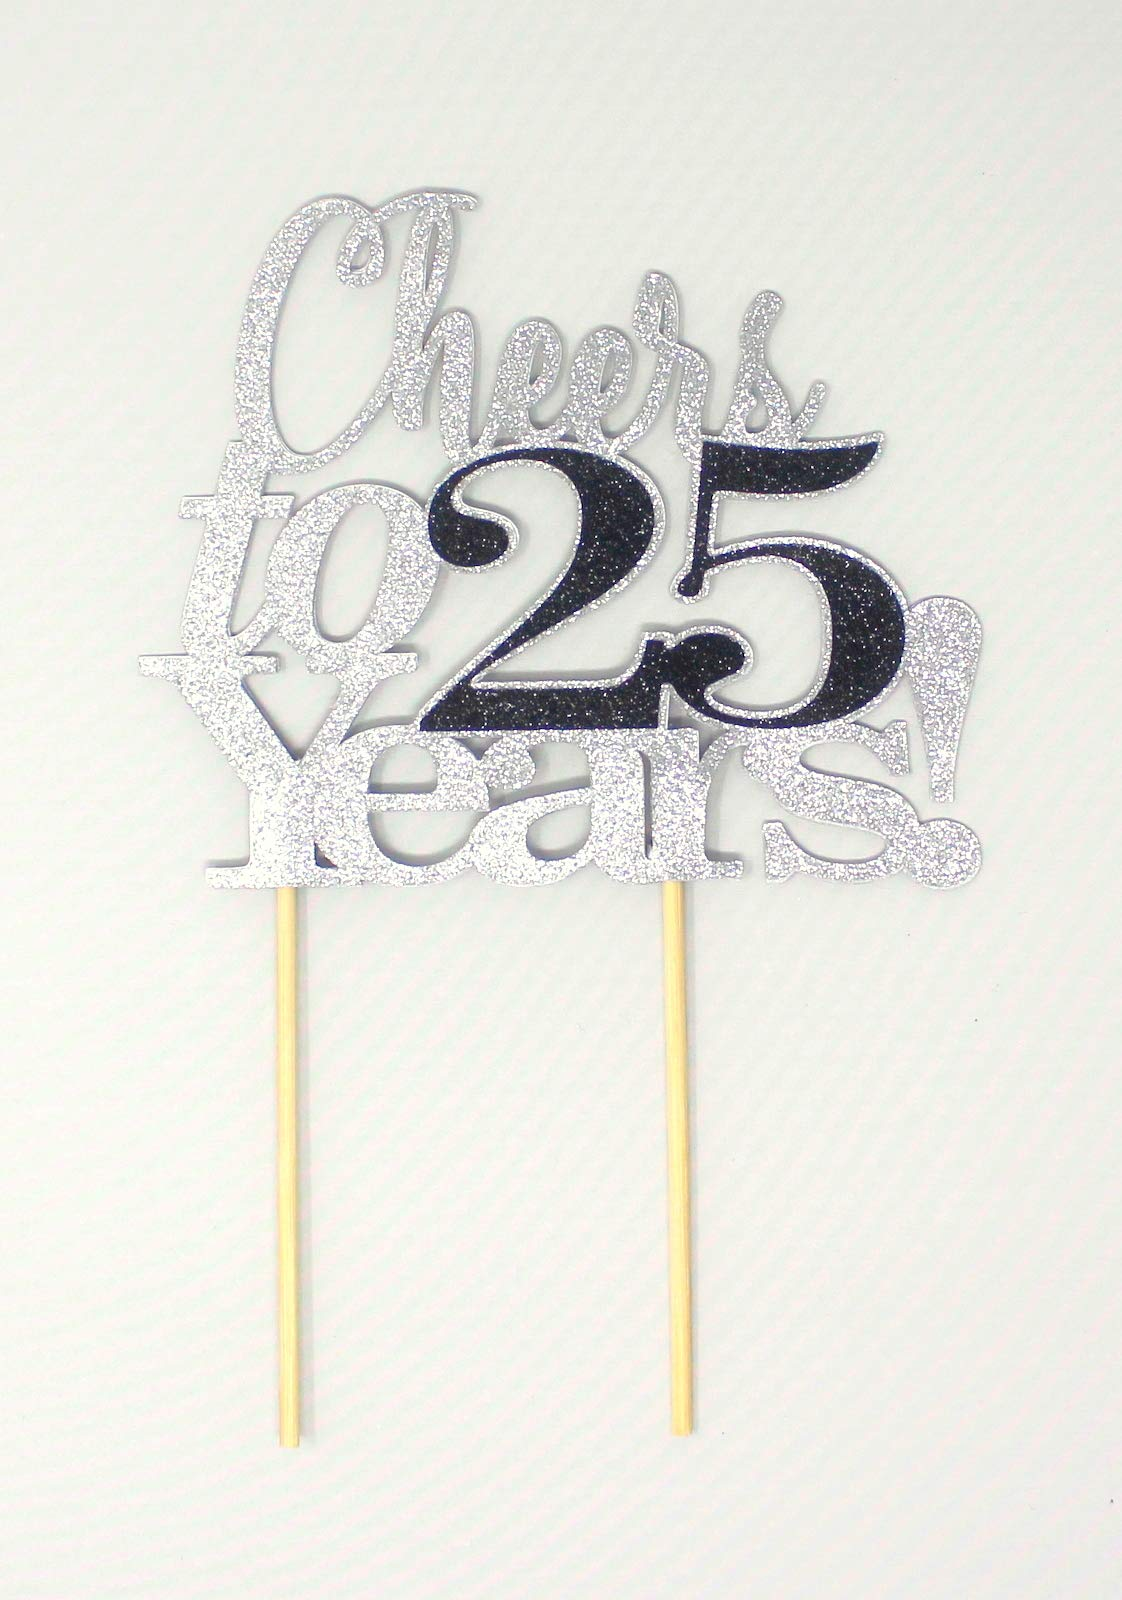 All About Details Cheers to 25 Years! Cake Topper, 1PC, 25th birthday, 25th anniversary, retirement (Silver & Black)